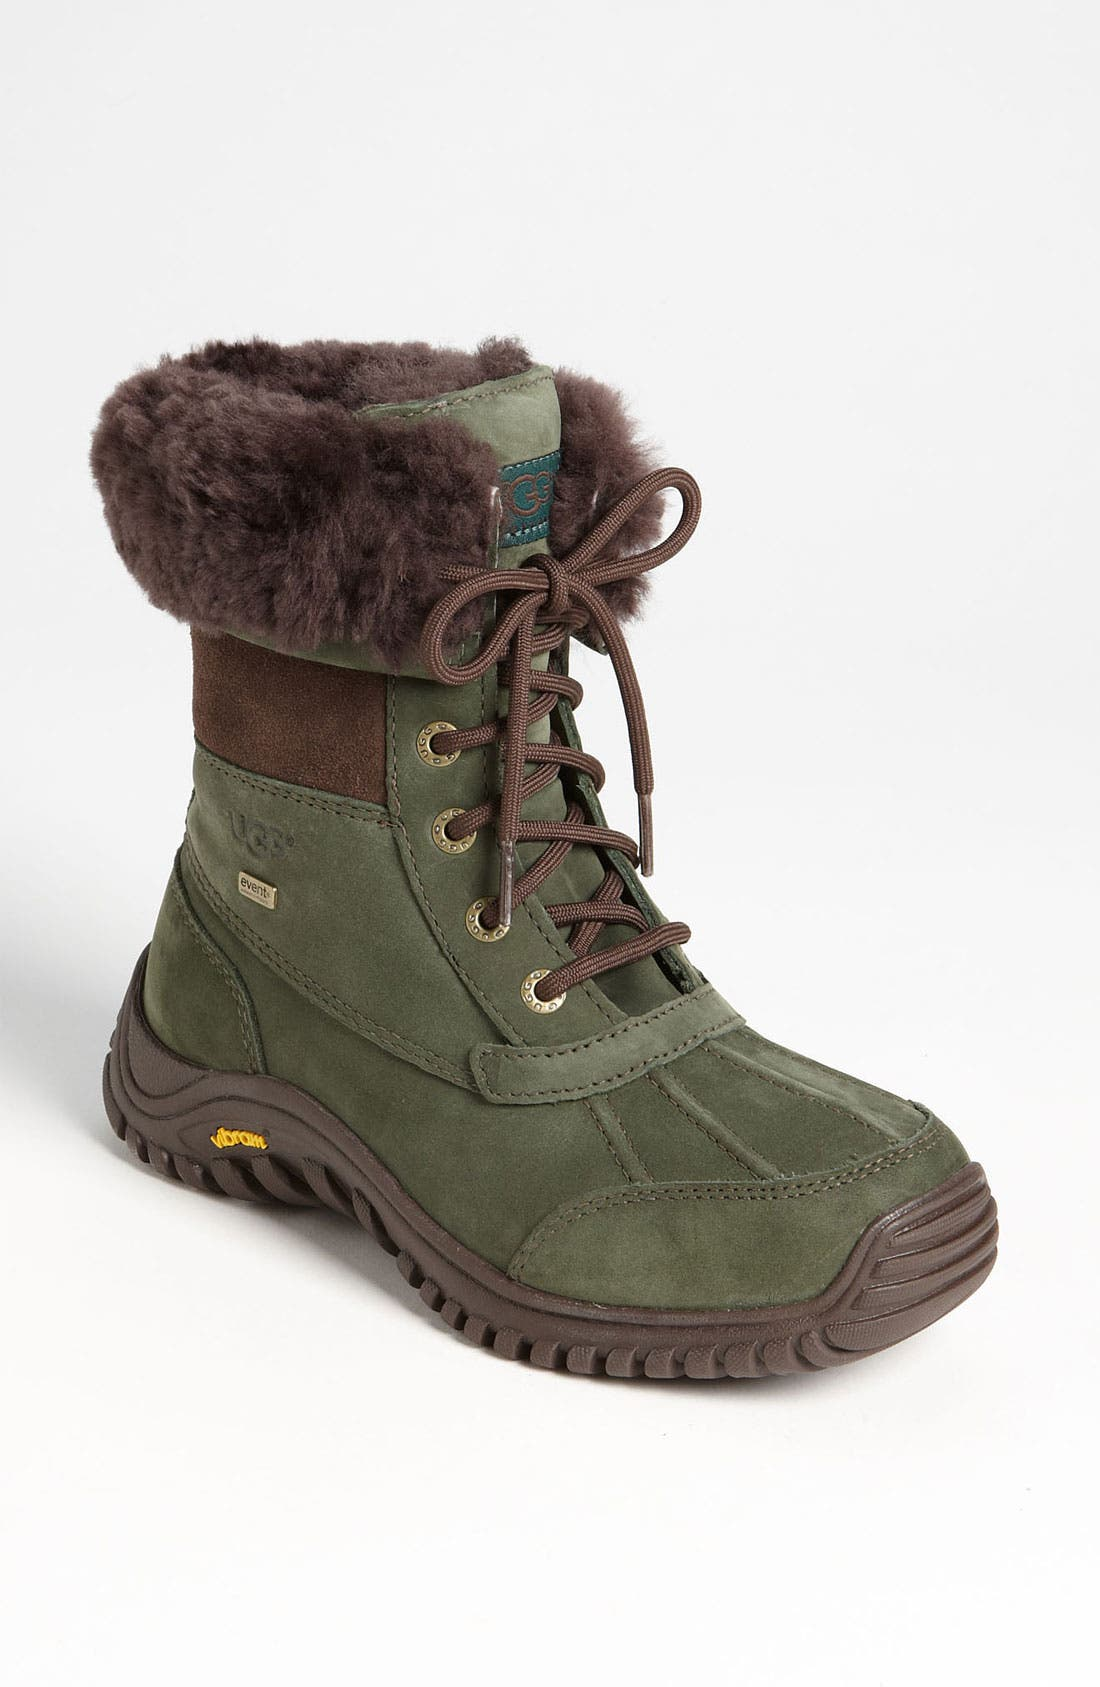 Adirondack II Waterproof Boot,                             Main thumbnail 14, color,